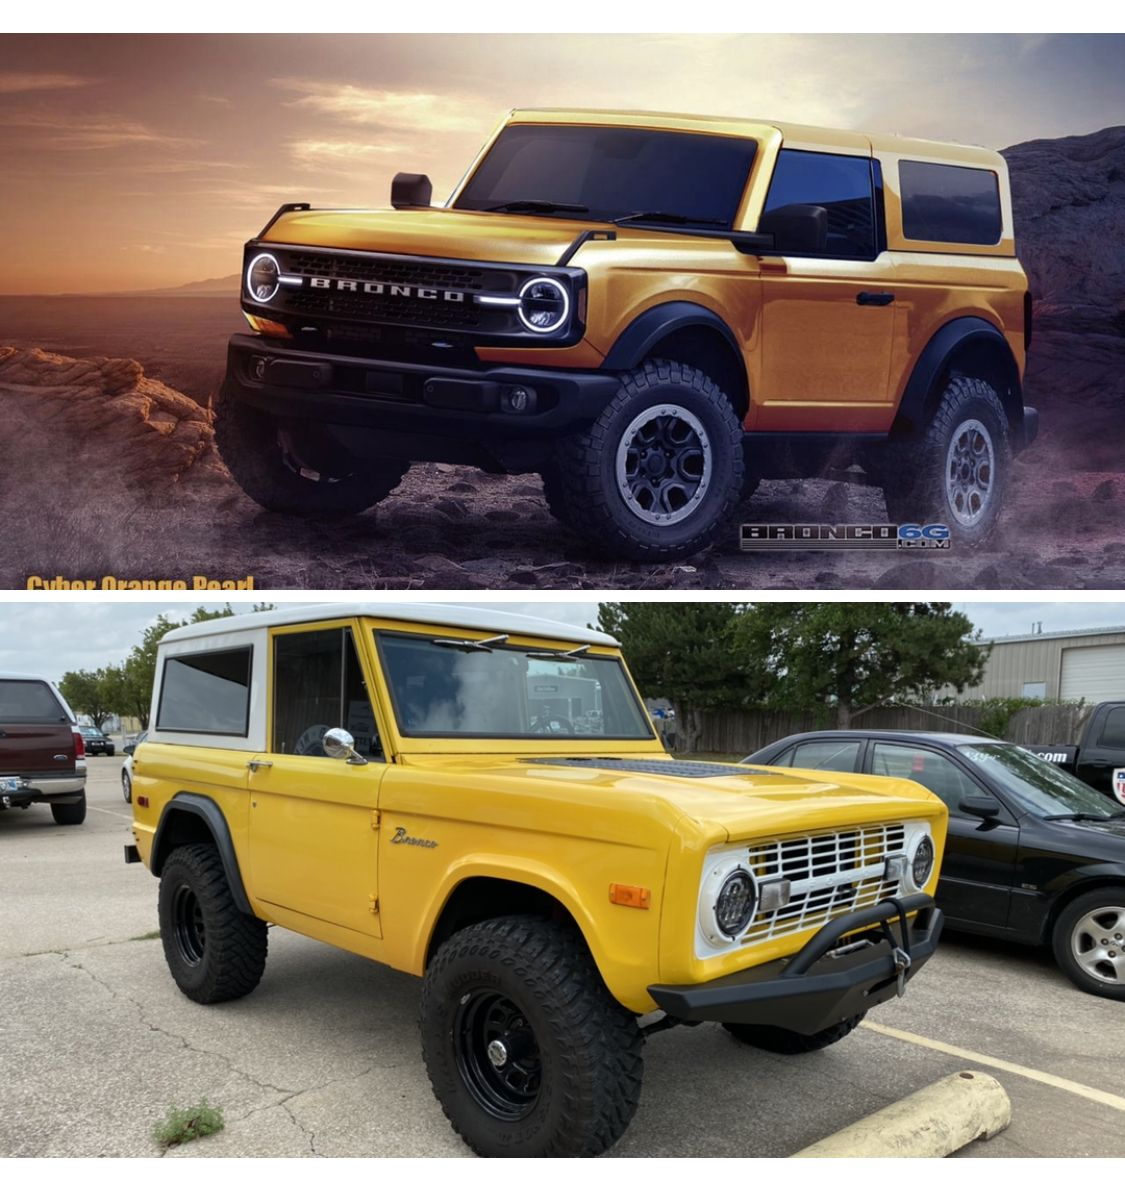 New 2020 Bronco In 2020 Ford Bronco Classic Ford Broncos Bronco